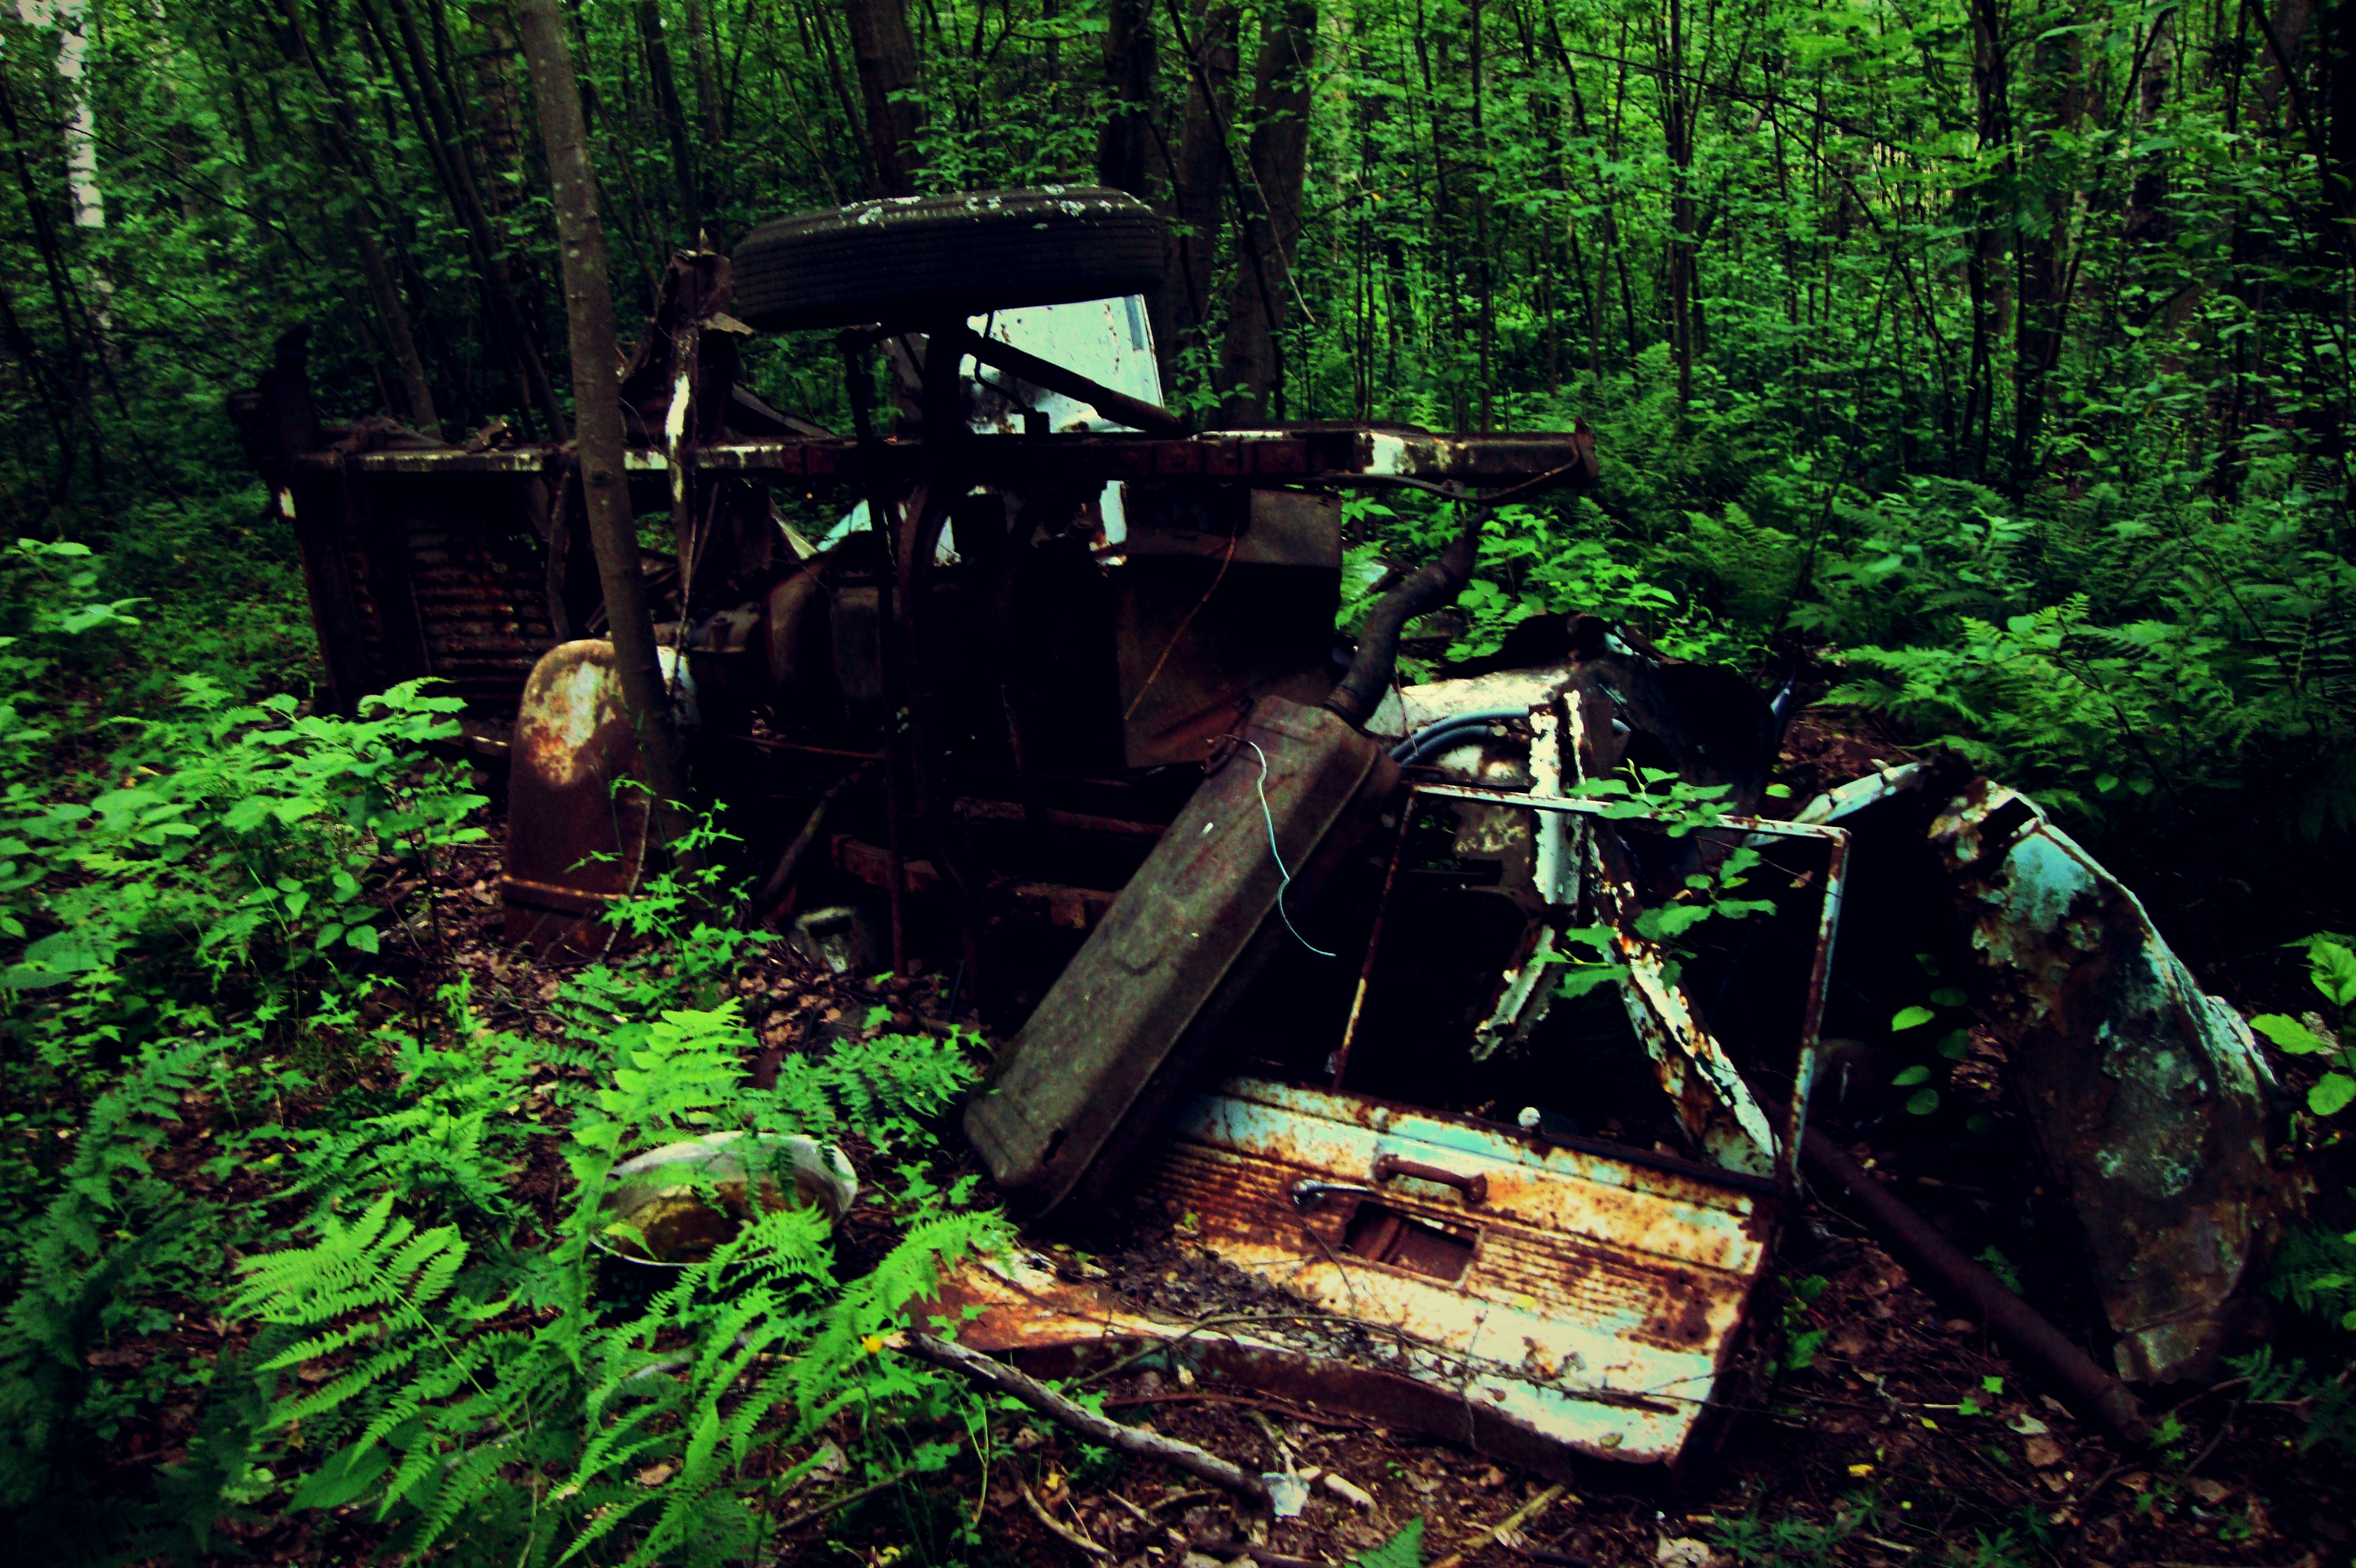 In the middle of nowhere, is where I found this old car wreck ...